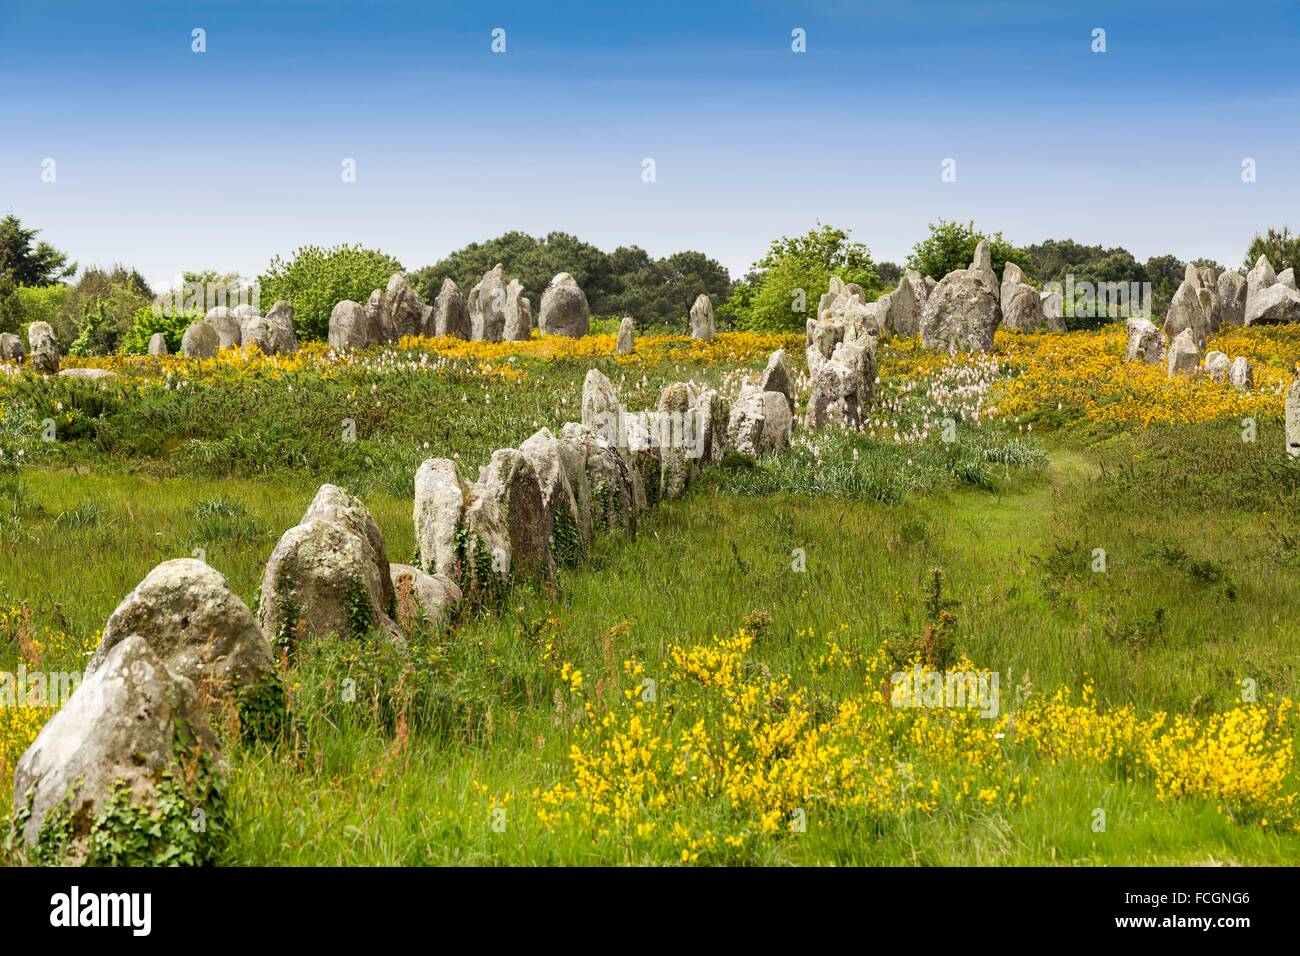 Kermario alignment, dolmen, megalithic site of Carnac, Morbihan, French Brittany, France, Europe - Stock Image